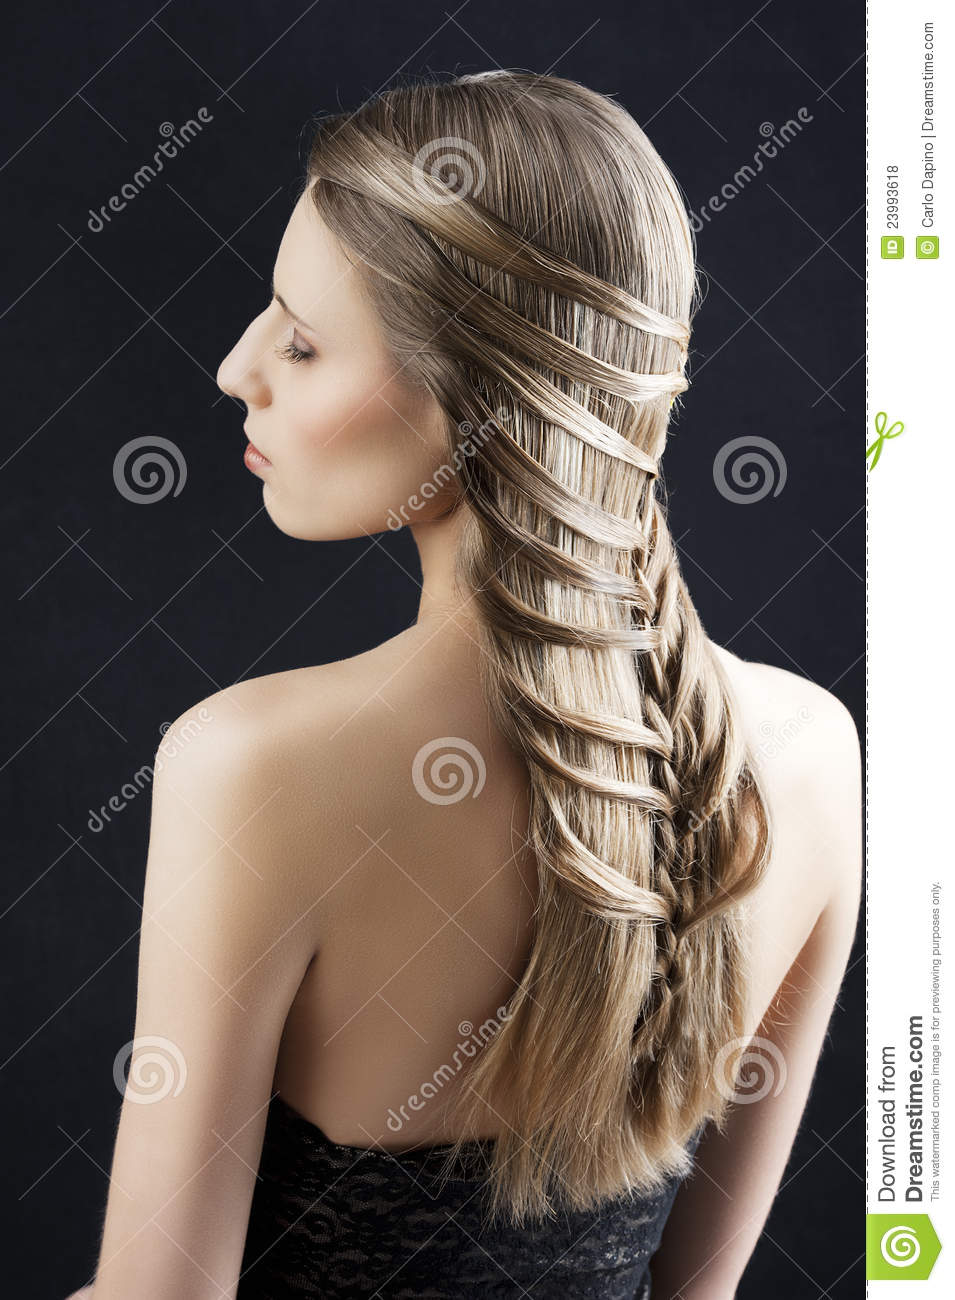 Long Hair And Fashion Hairstyle Stock Photo Image Of Healthy